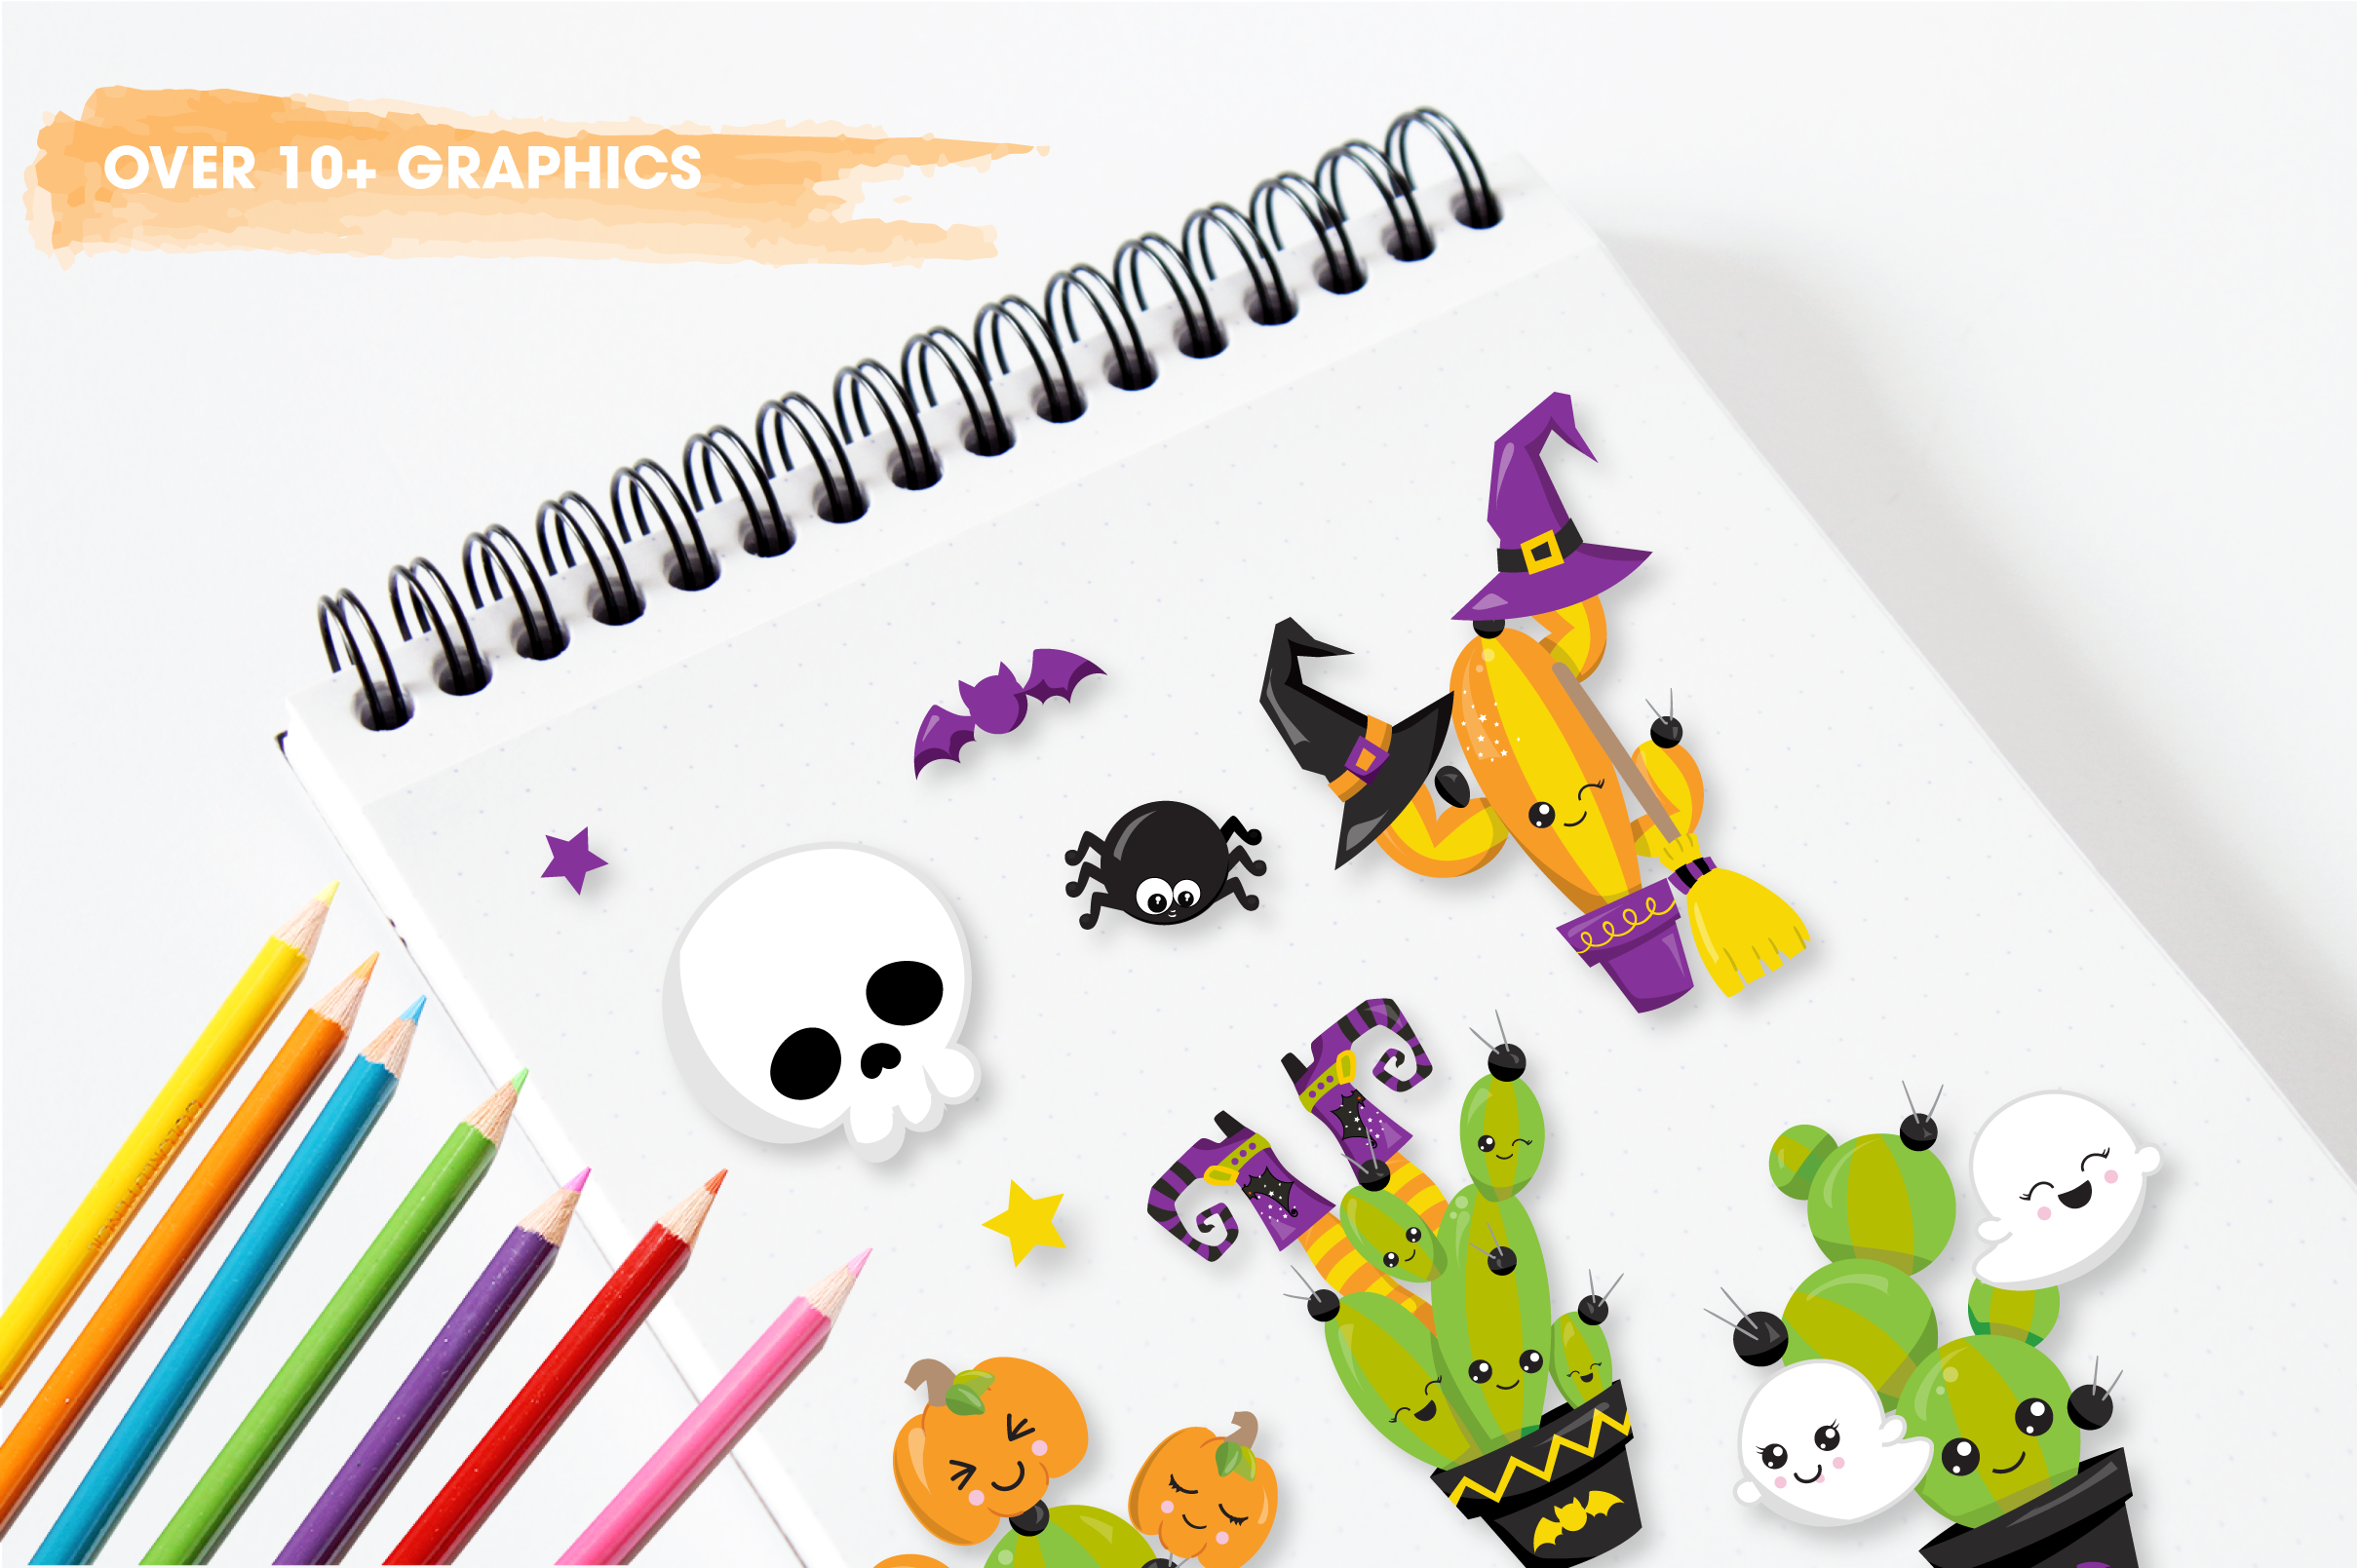 Halloween cactus graphics and illustrations example image 3